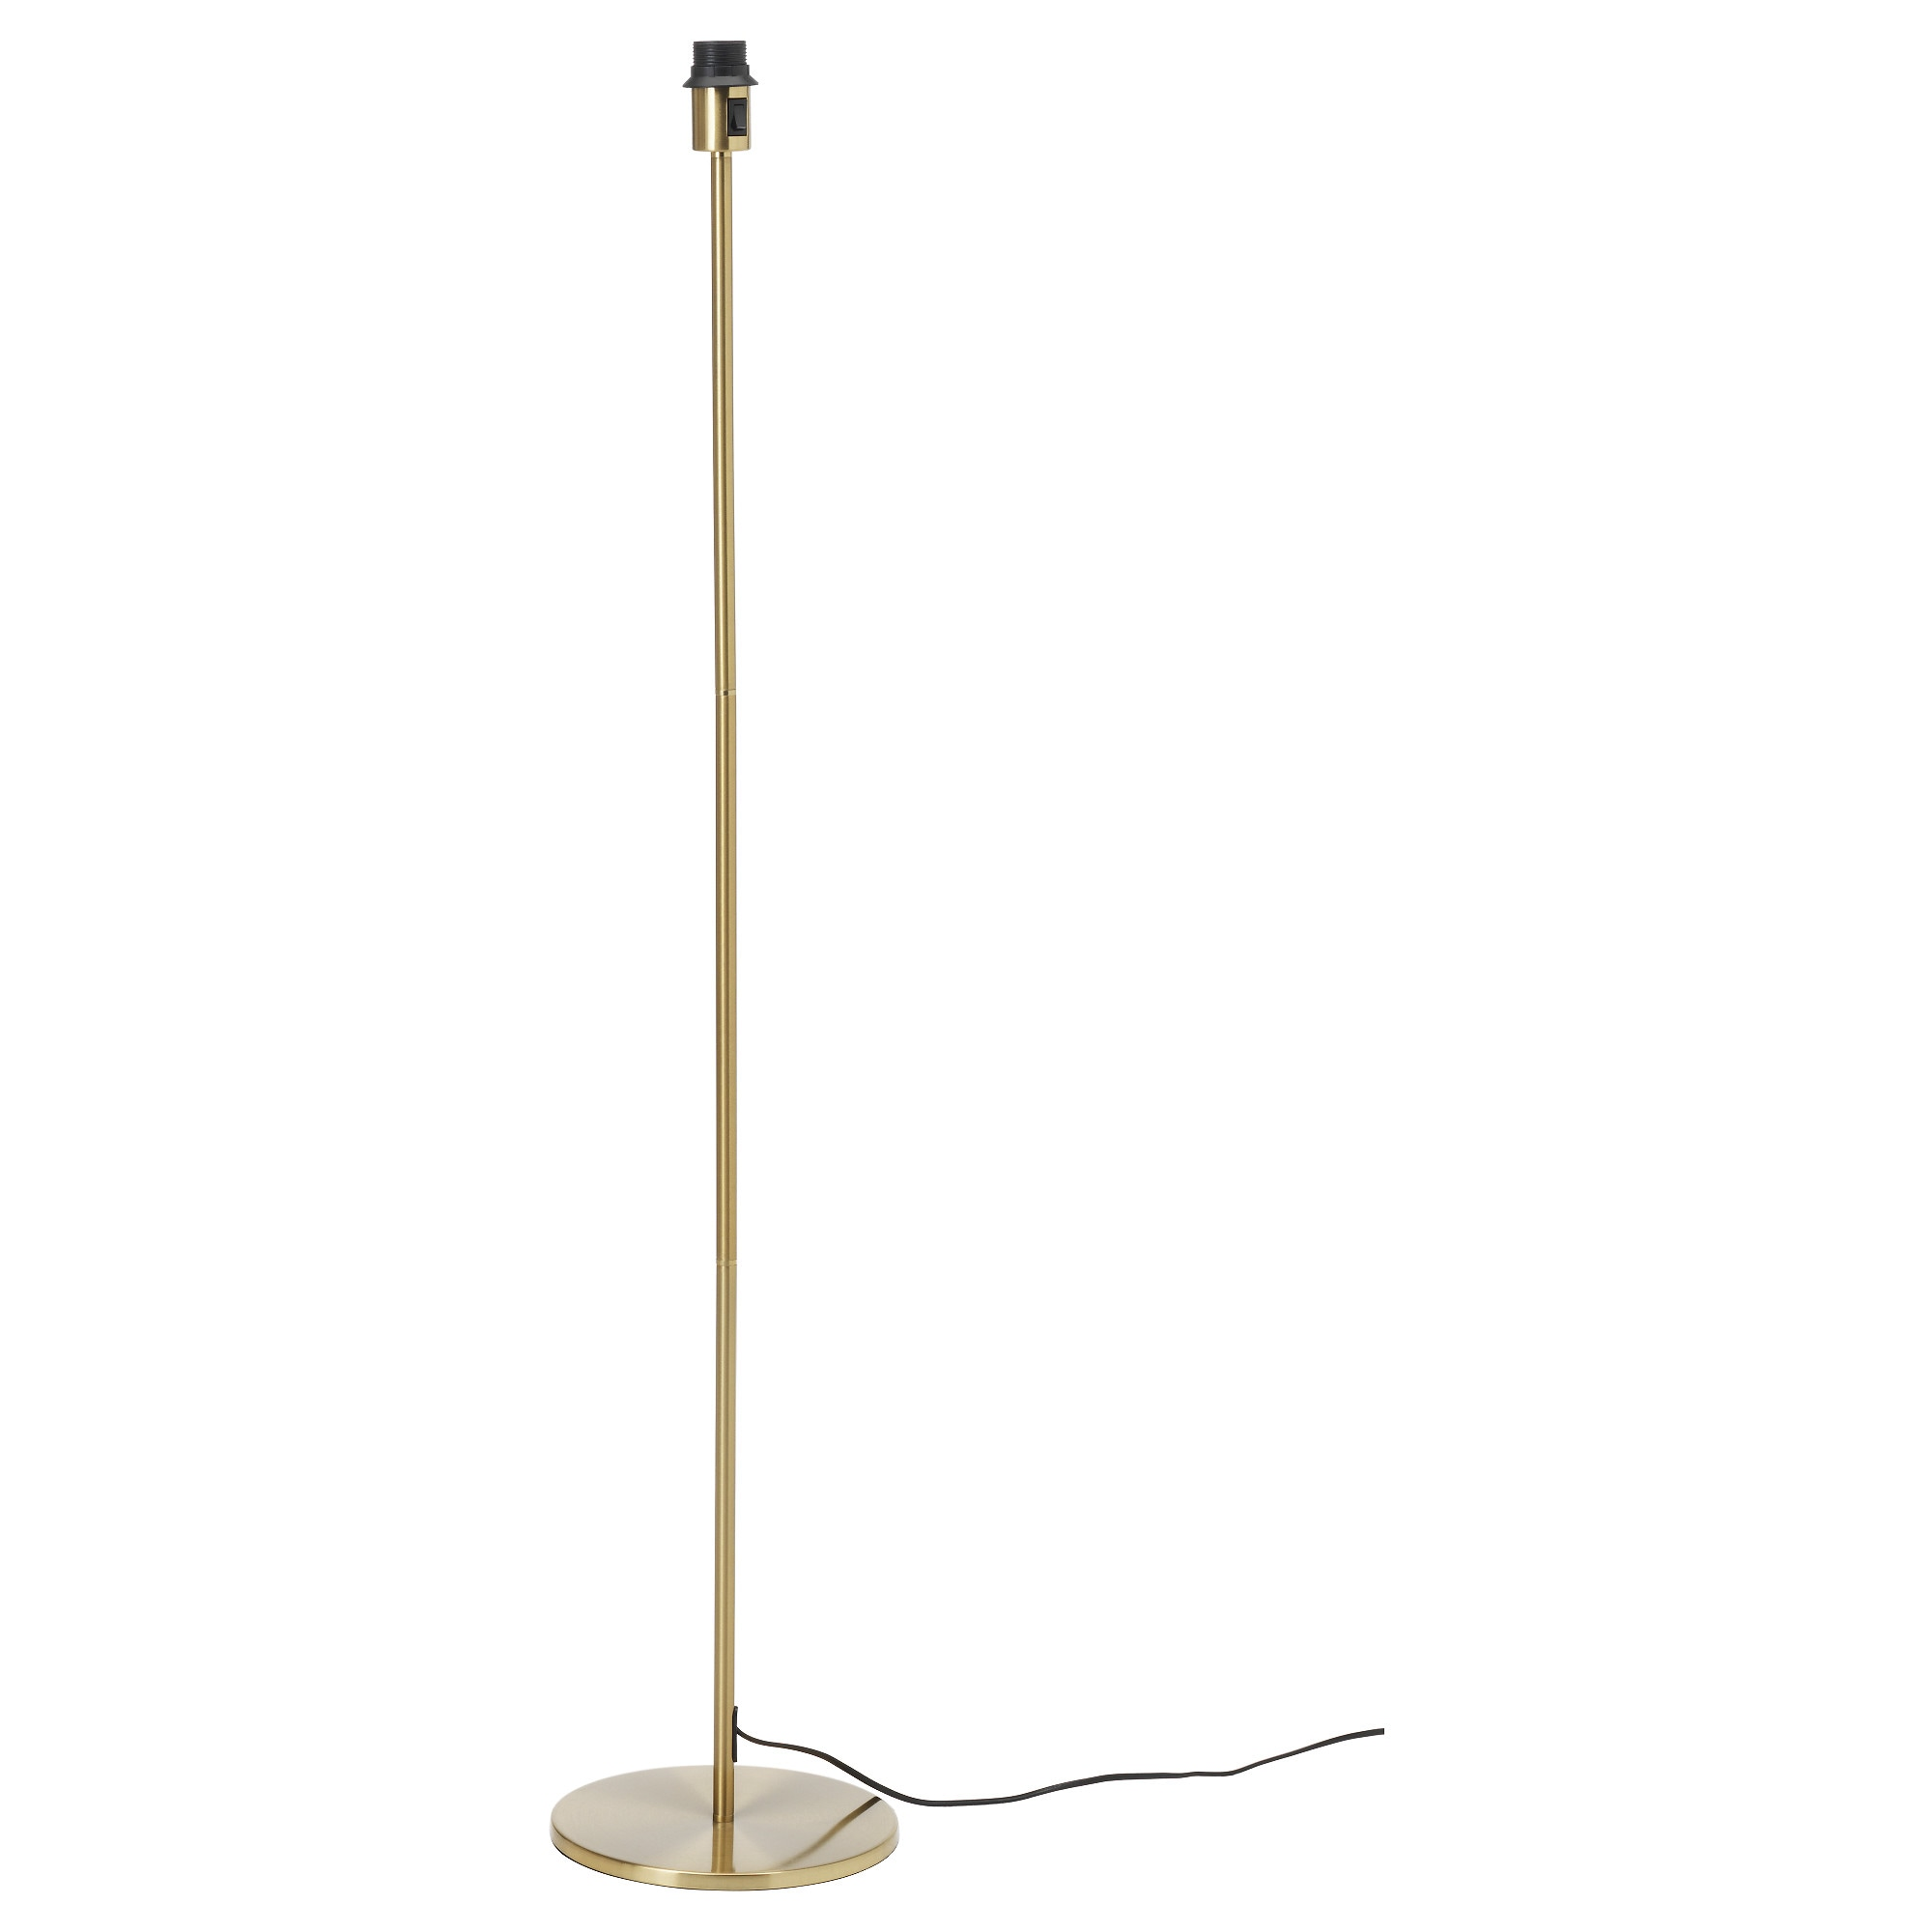 rodd floor lamp base with led bulb brass color height 52 base diameter cable lighting ikea